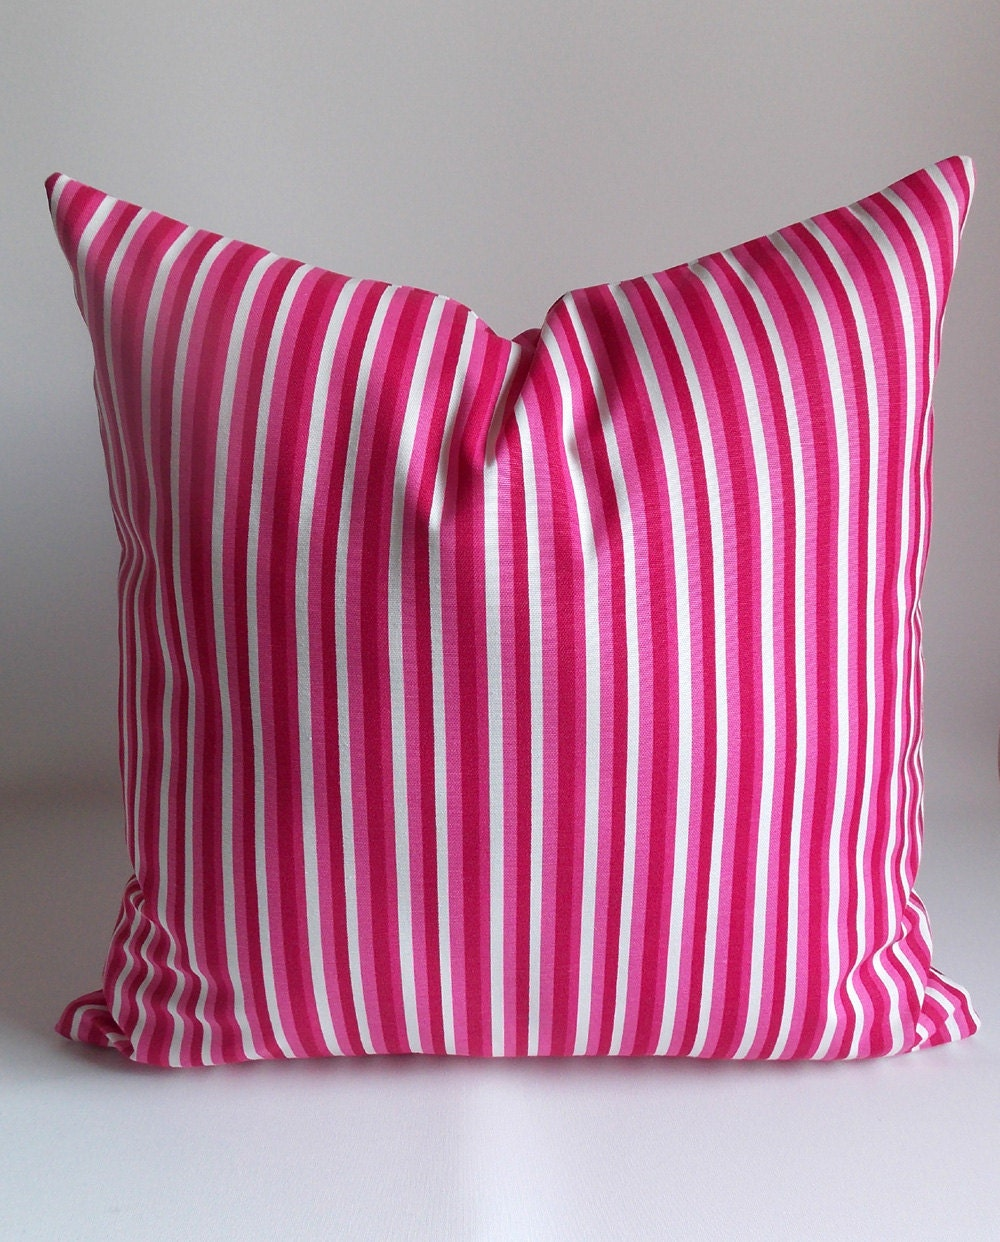 Decorative Pillow Pink : Pink Striped pillow Decorative pillow Throw pillow